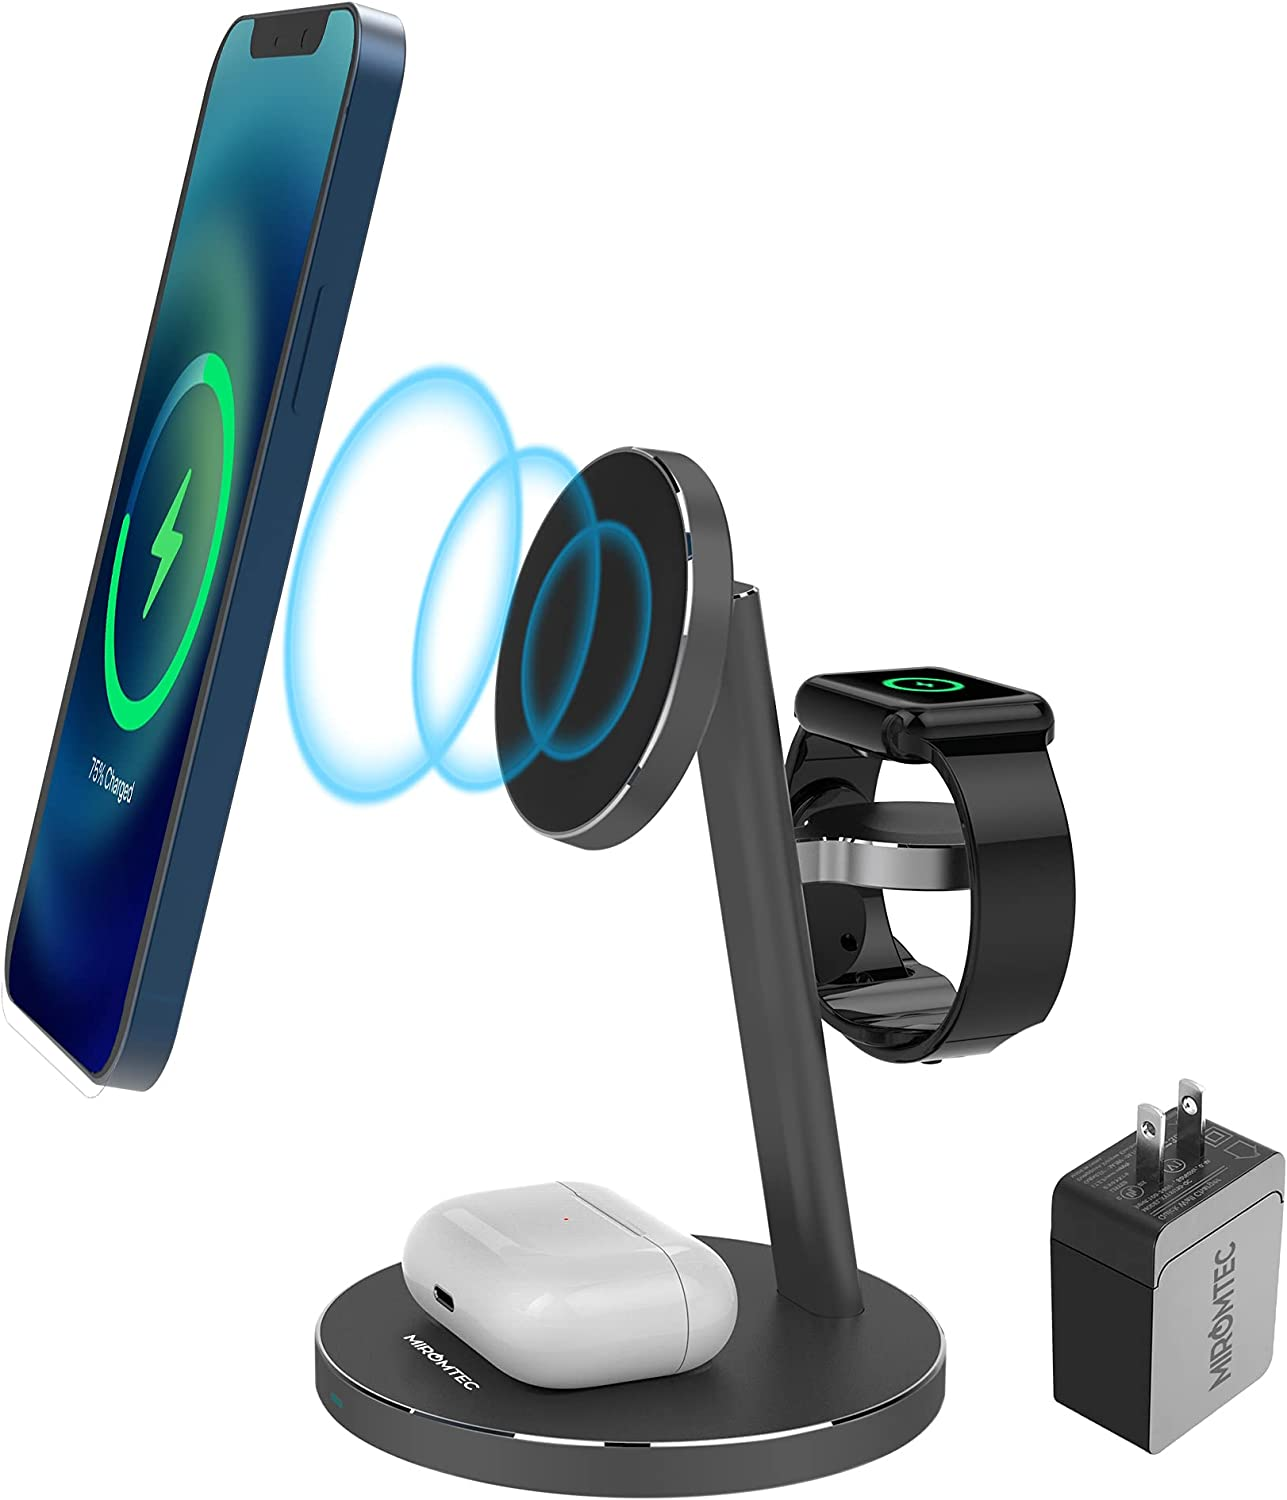 3 in 1 Magnetic Wireless Mag-Safe Charger Ranking TOP6 Manufacturer regenerated product for Charging Station